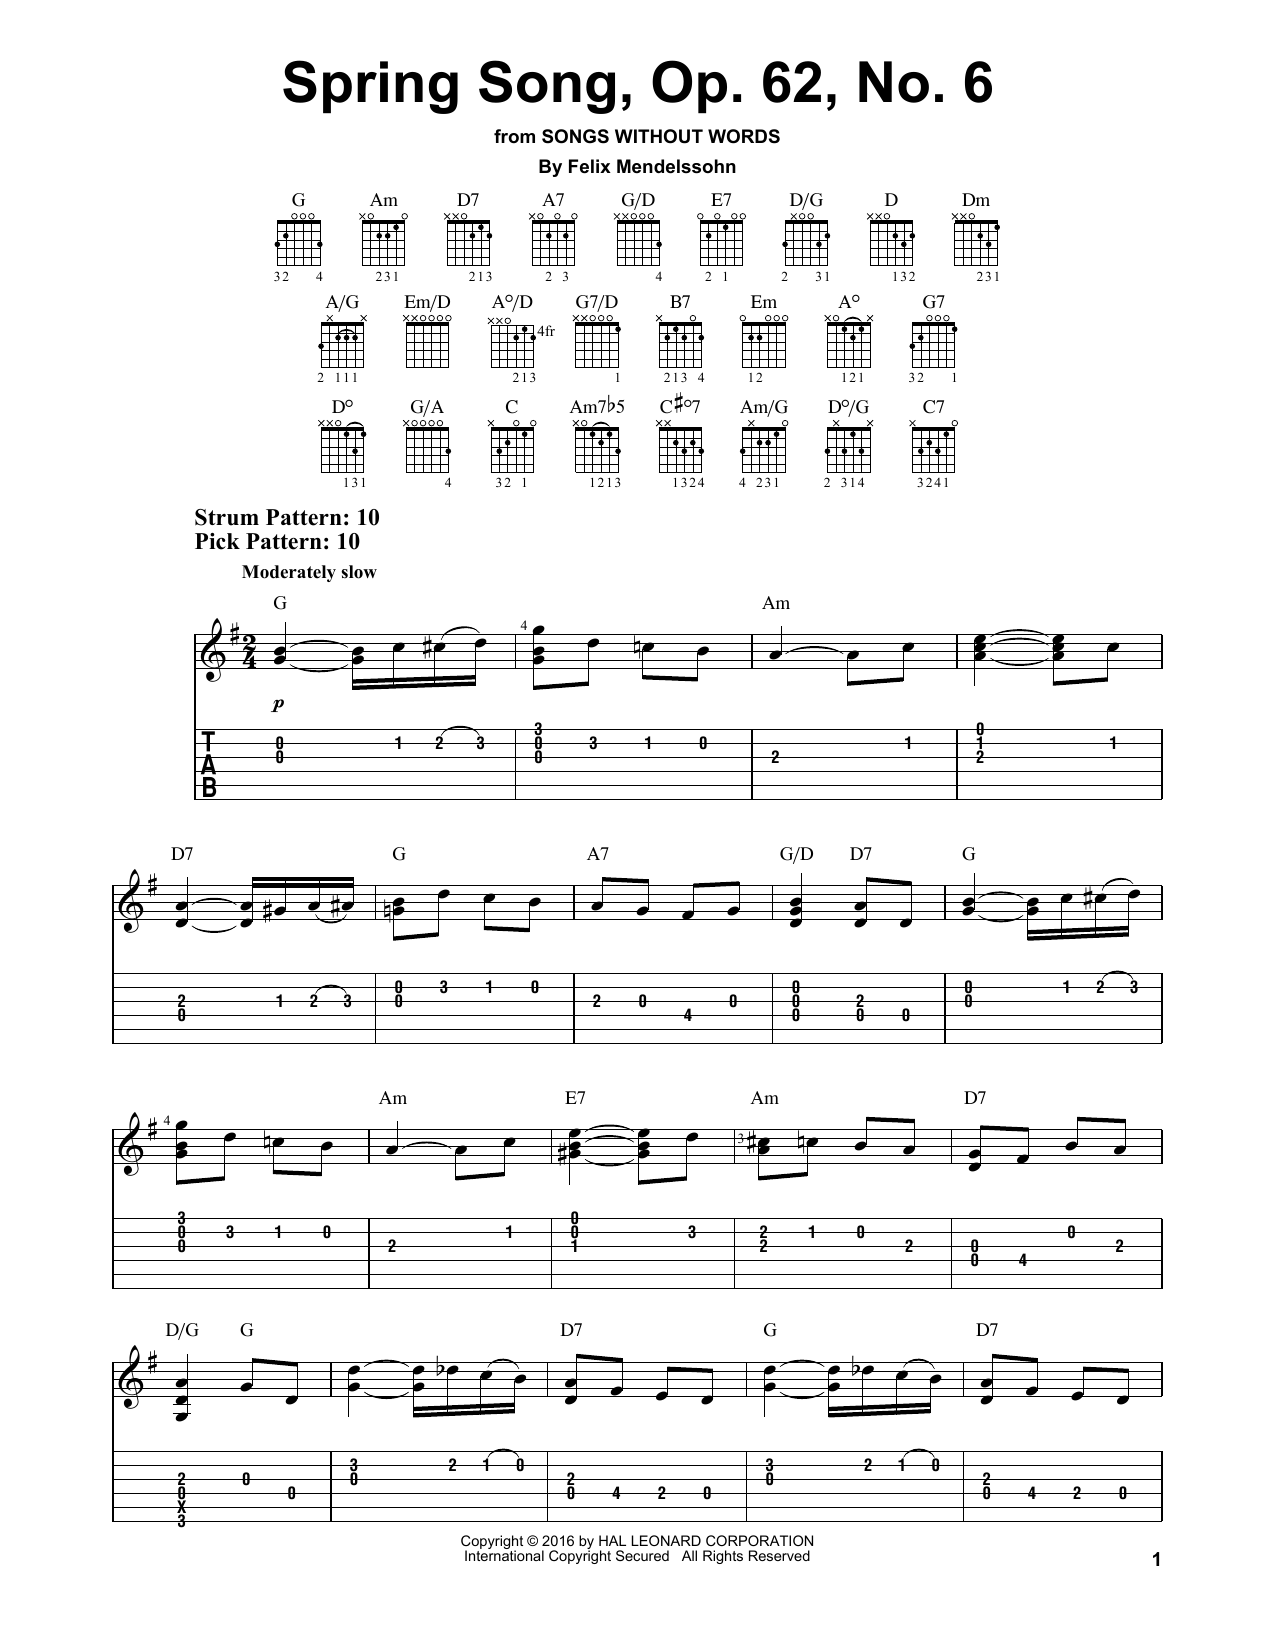 Spring Song, Op. 62, No. 6 Sheet Music